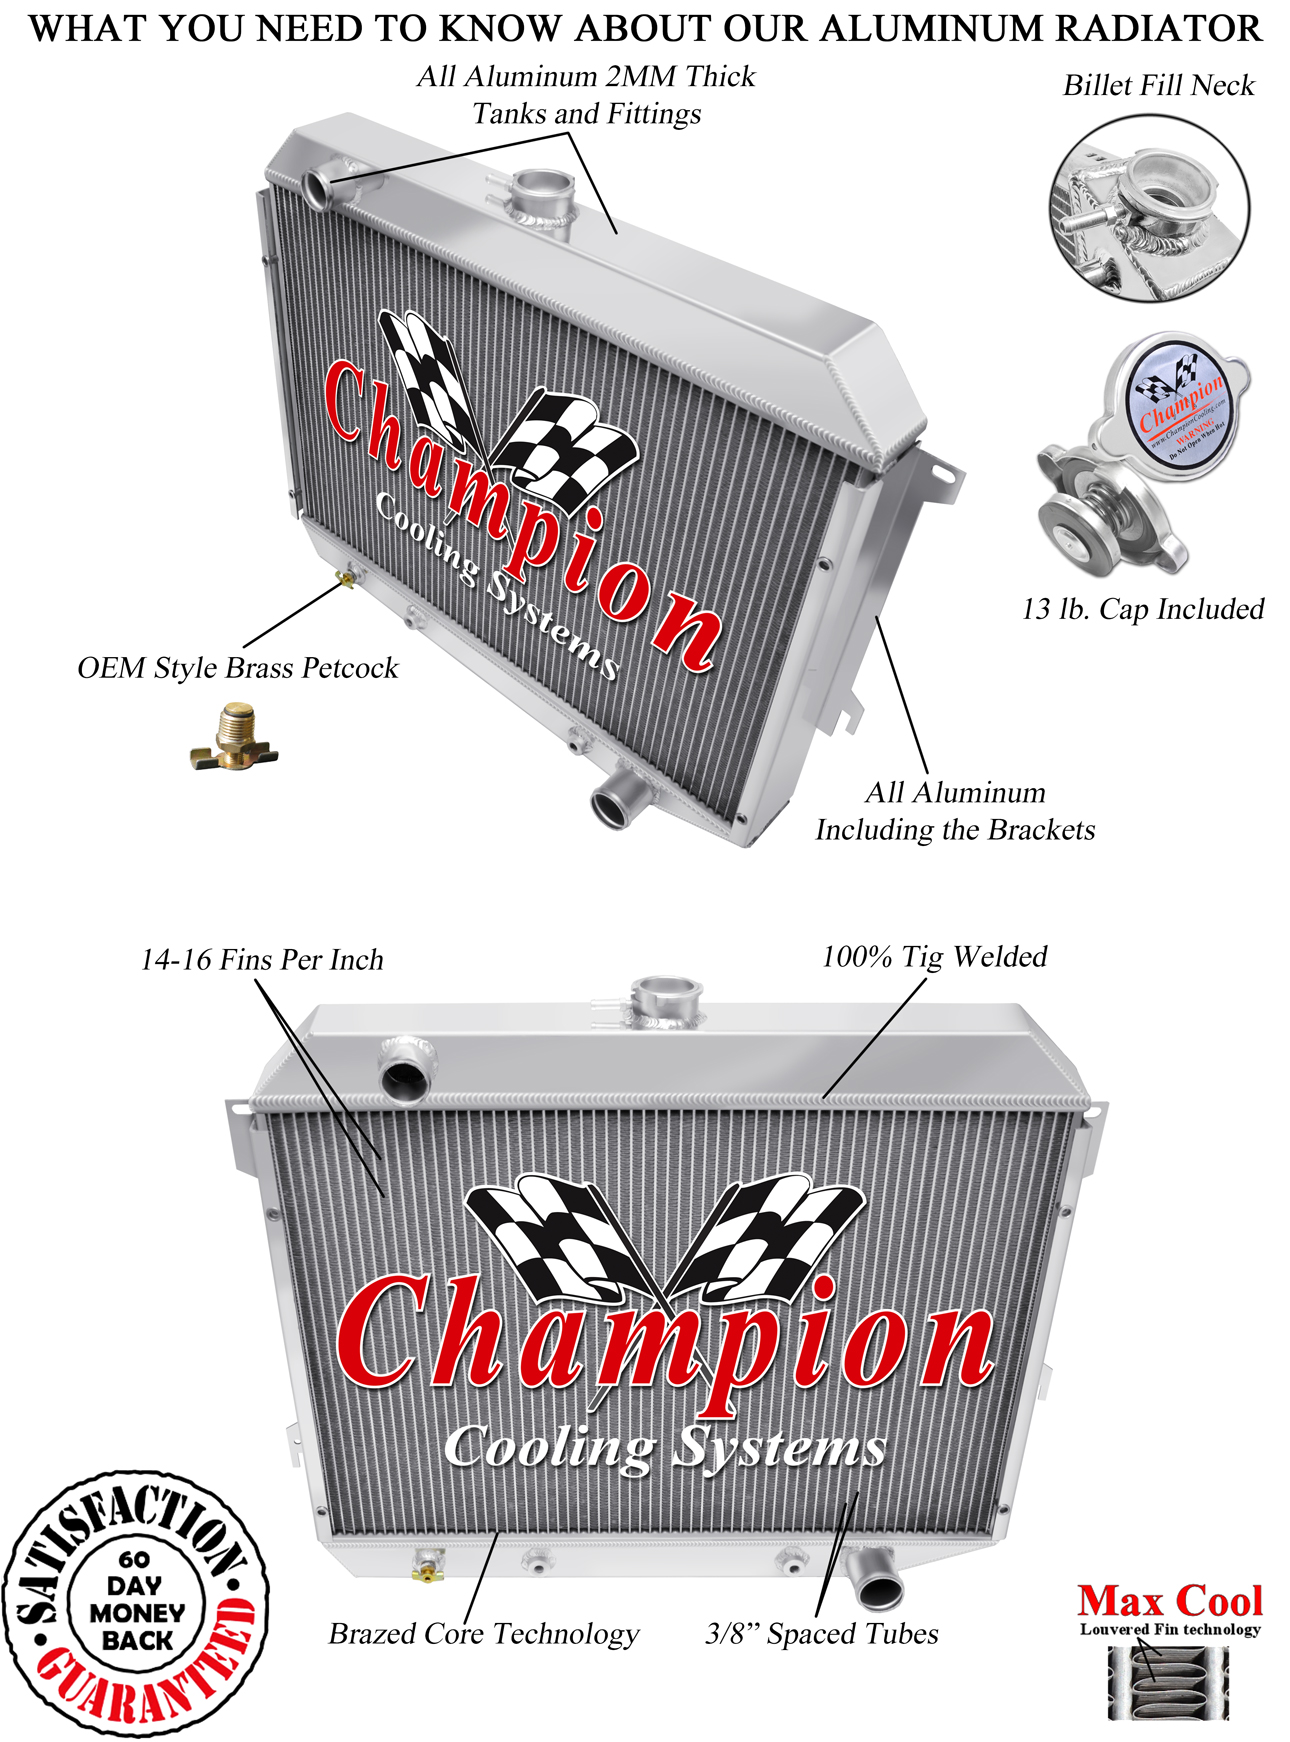 https://www.championcooling.com/photos/Photos%20White/Without%20Fans/374/374.JPG